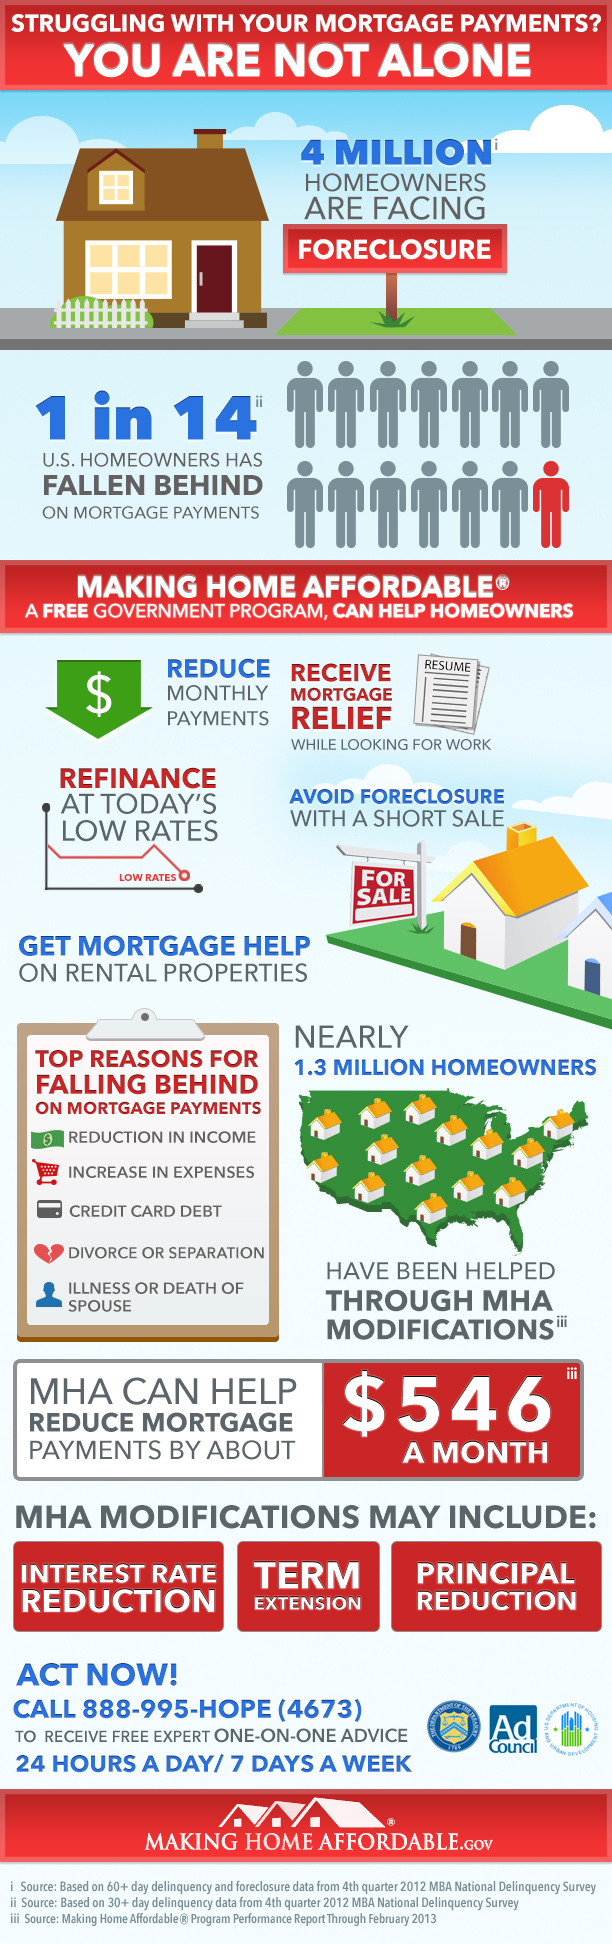 Struggling with Mortgage Payments. You're Not Alone